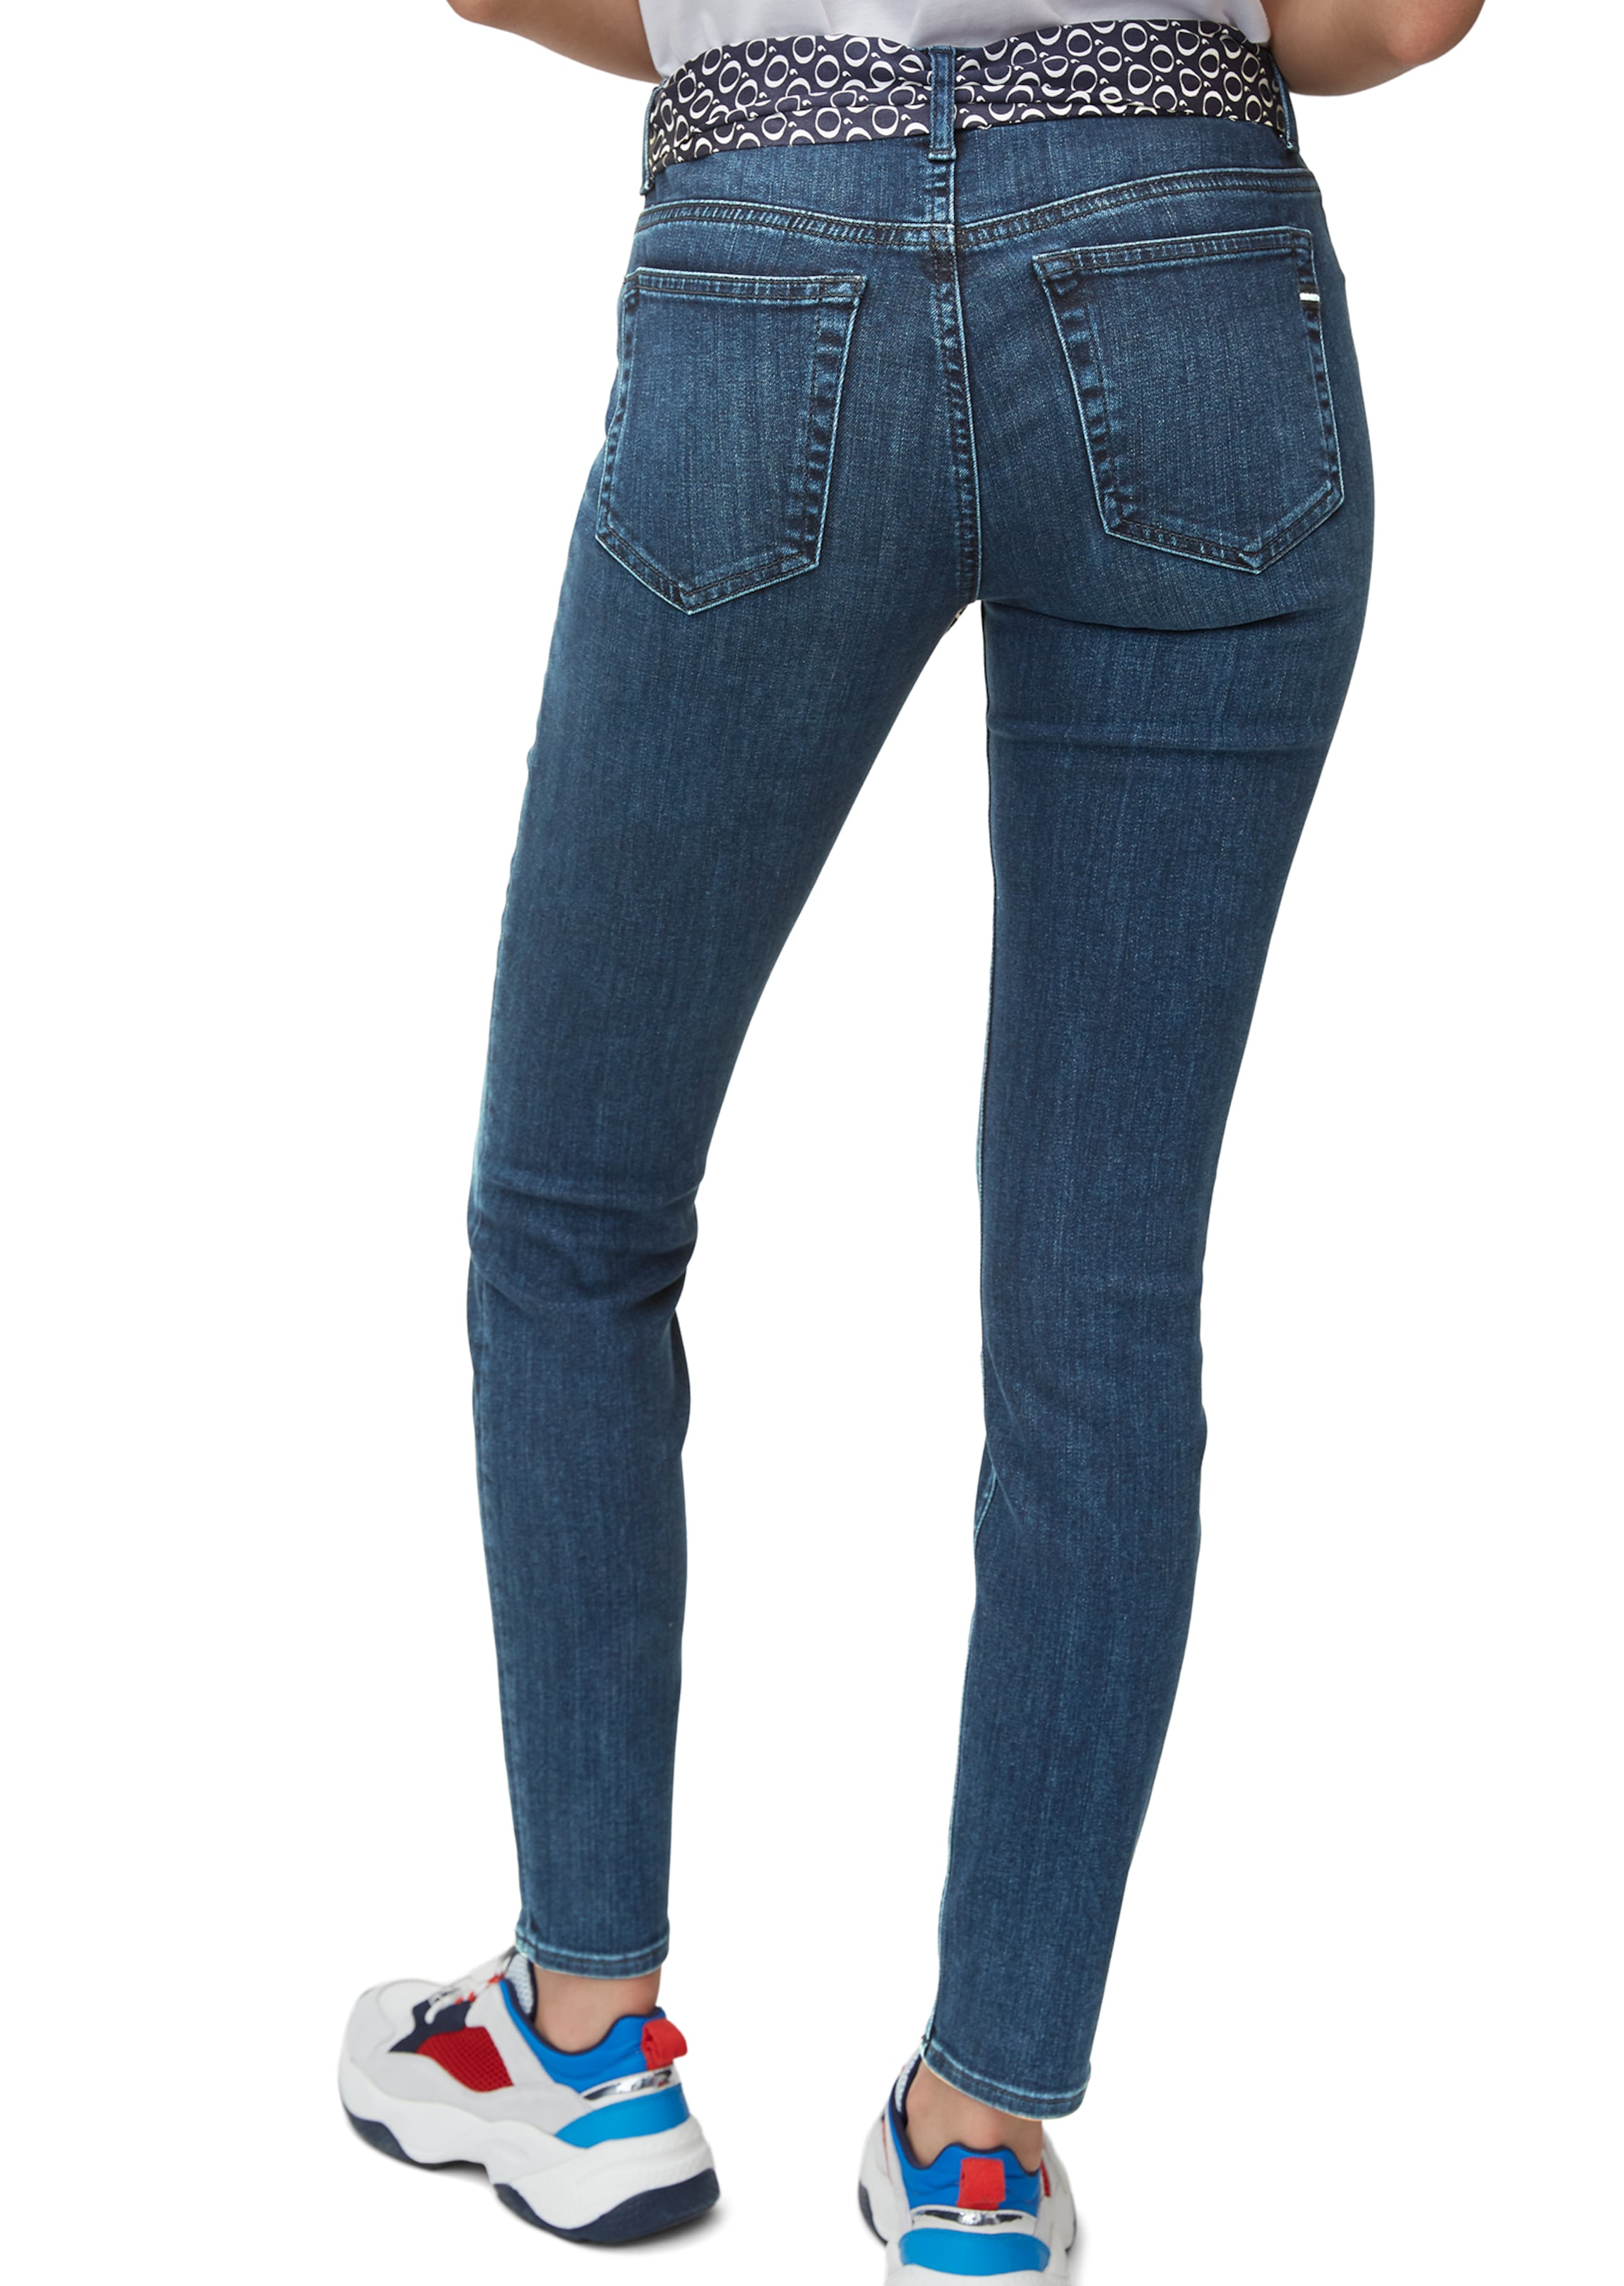 Marc In 'lulea' O'polo Blue Jeans Denim cK1Tl3JuF5